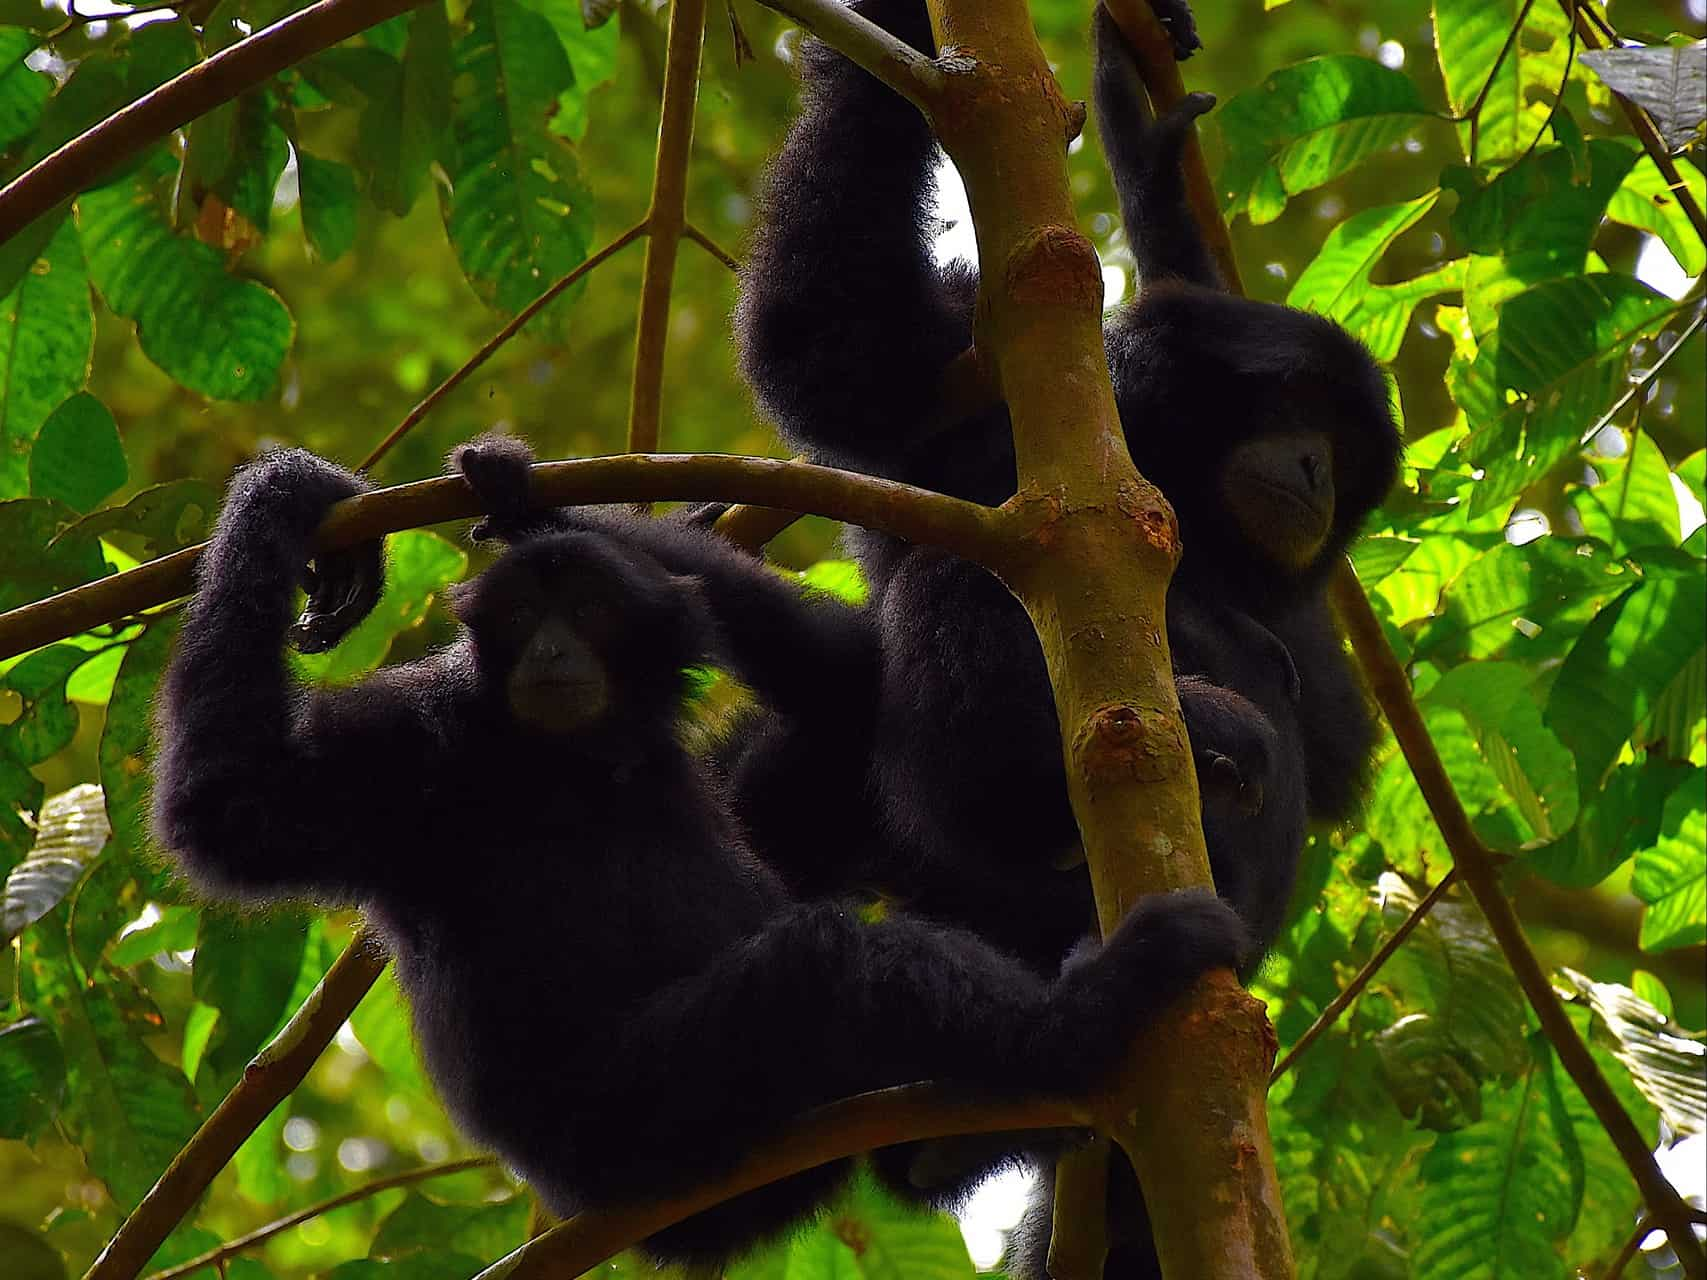 BLACK GIBBONS IN GUNUNG LEUSER NATIONAL PARK - BUKIT LAWANG JUNGLE TREKKING BY SUMATRA ECOTRAVEL